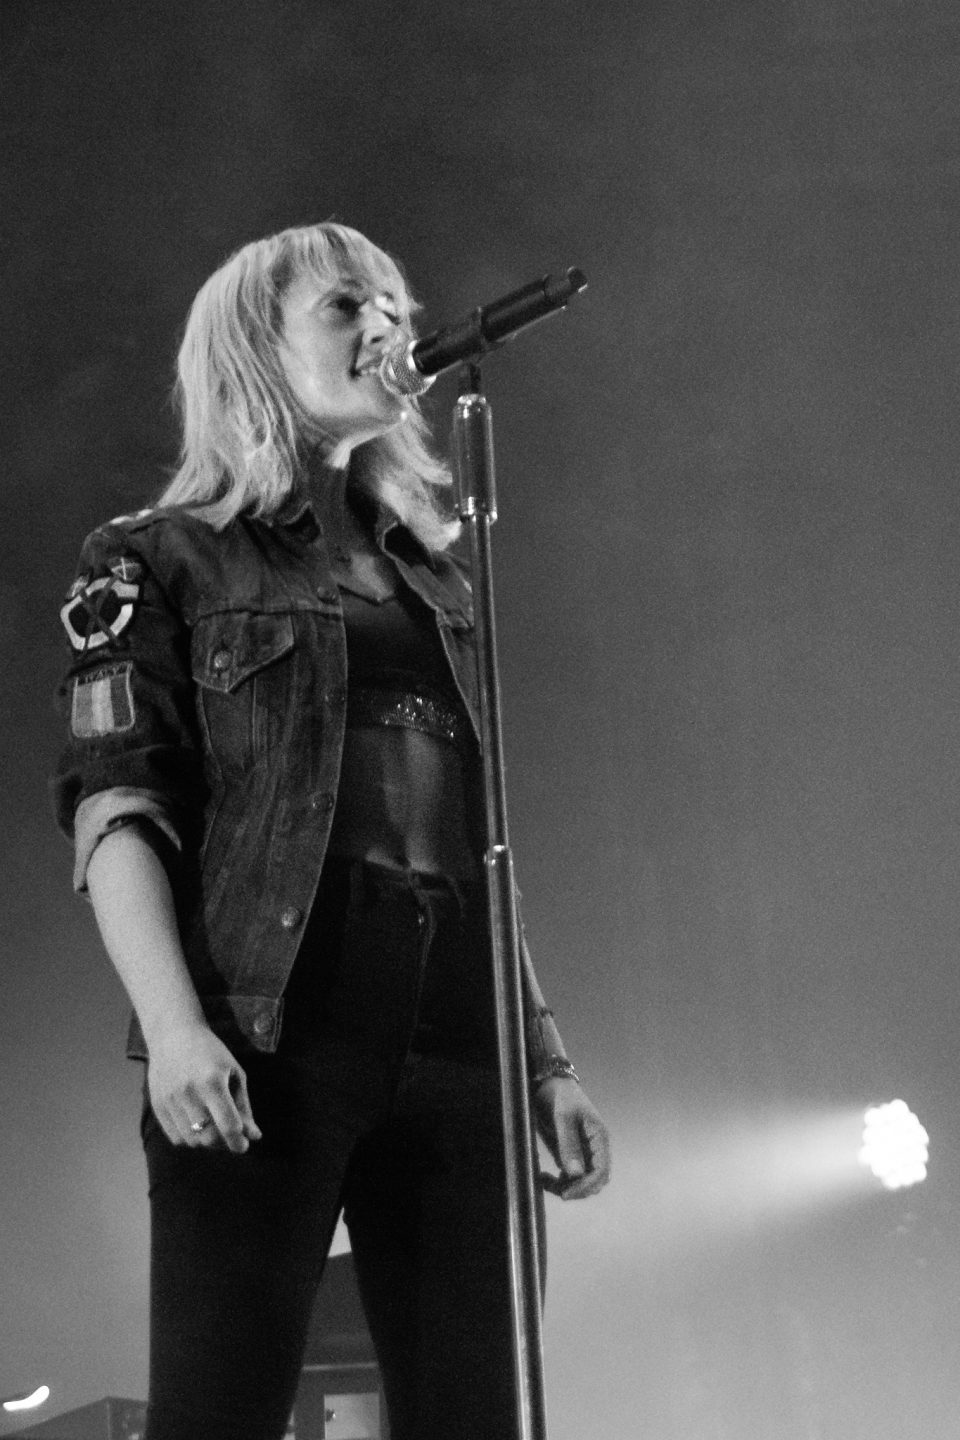 Metric at The Aragon Ballroom by Thomas Bock Photography